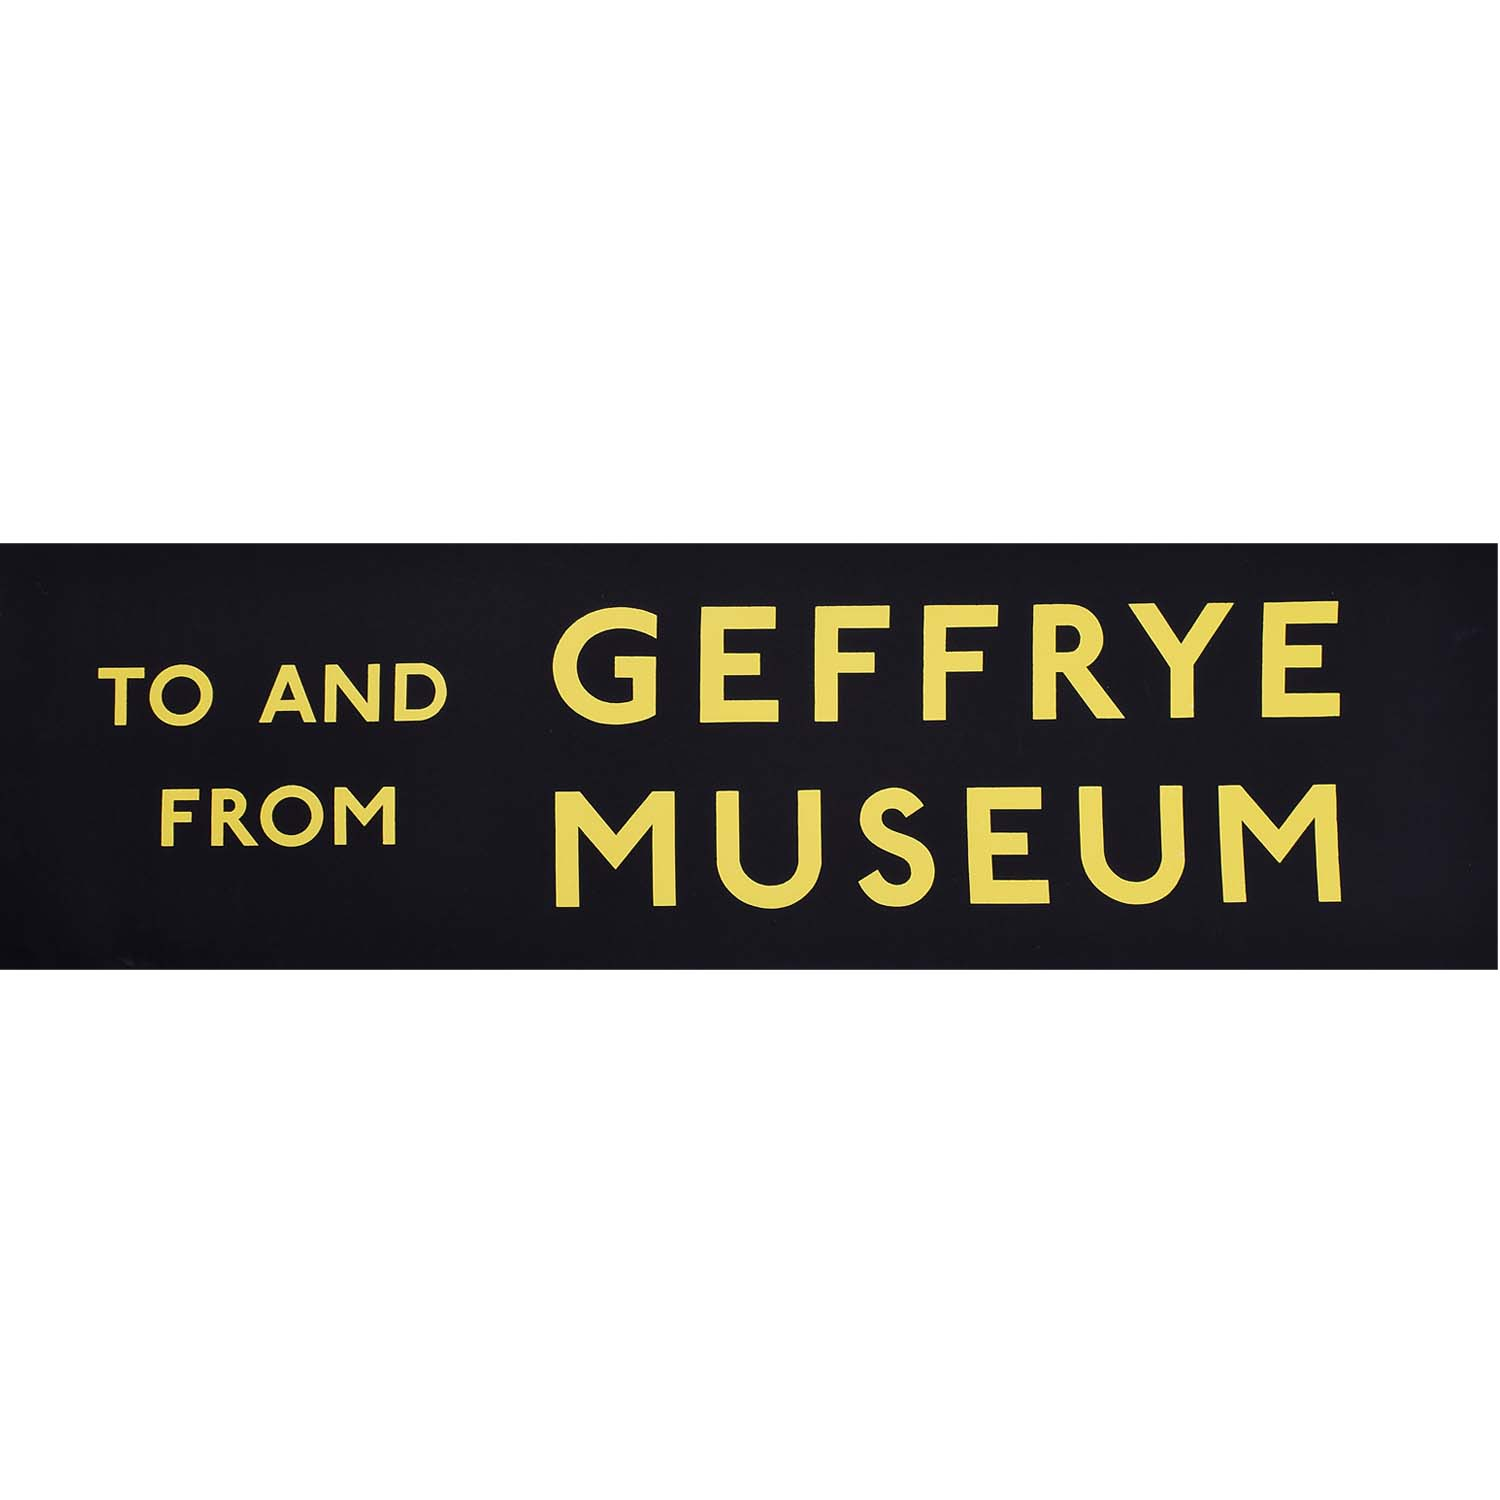 To and From Geffrye Museum Routemaster Bus Slipboard Poster c1970